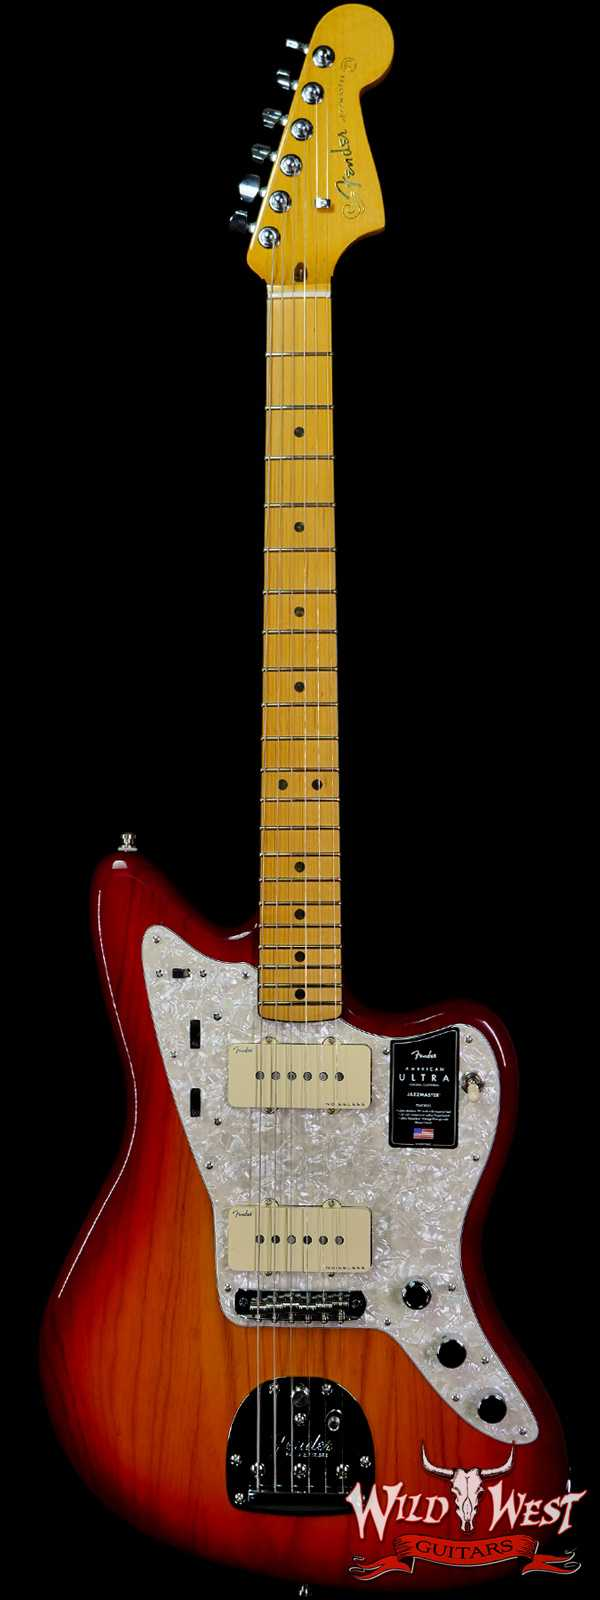 Fender American Ultra Jazzmaster Ash Body Maple Fingerboard Plasma Red Burst